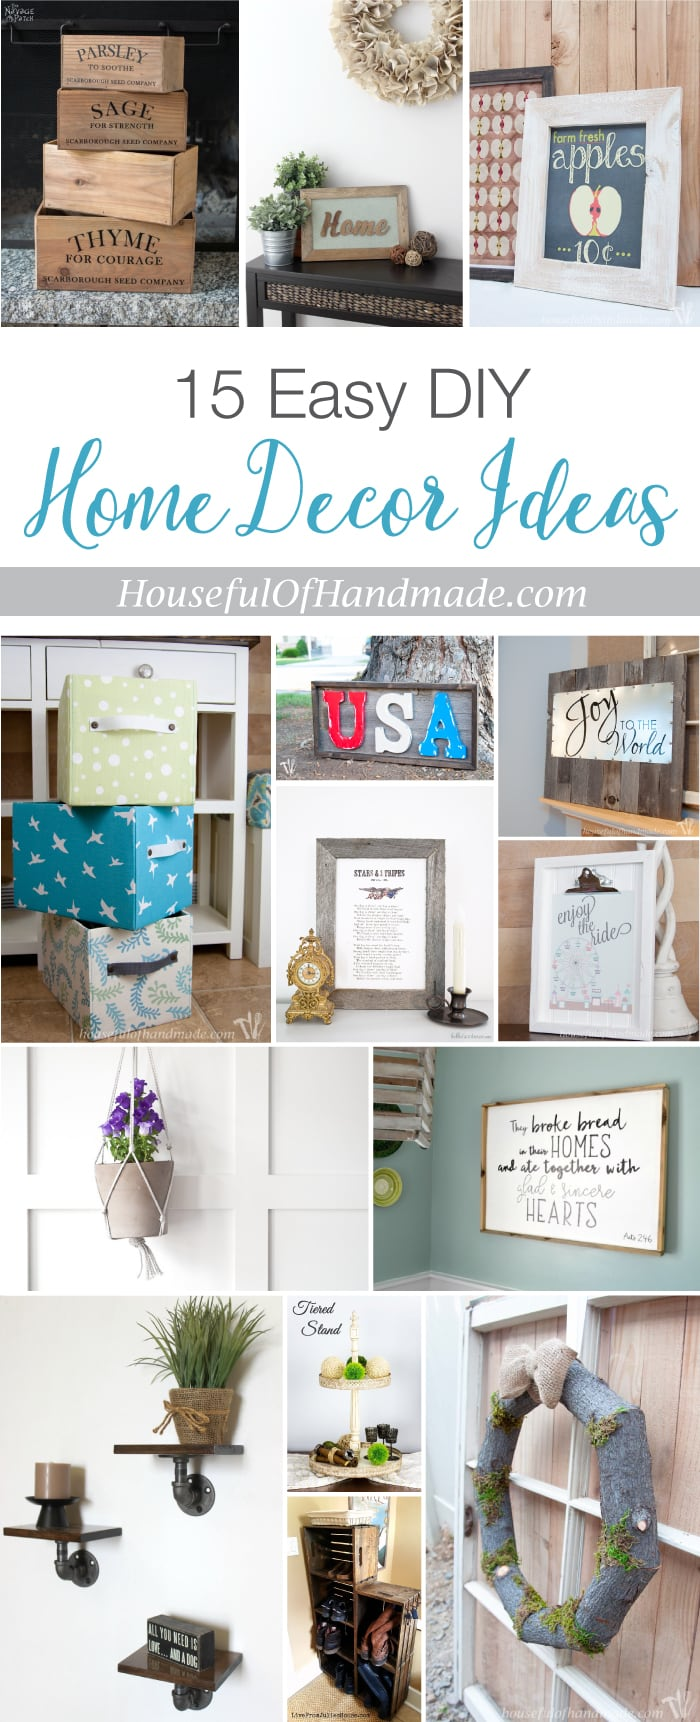 15 Easy DIY Home Decor Ideas - a Houseful of Handmade